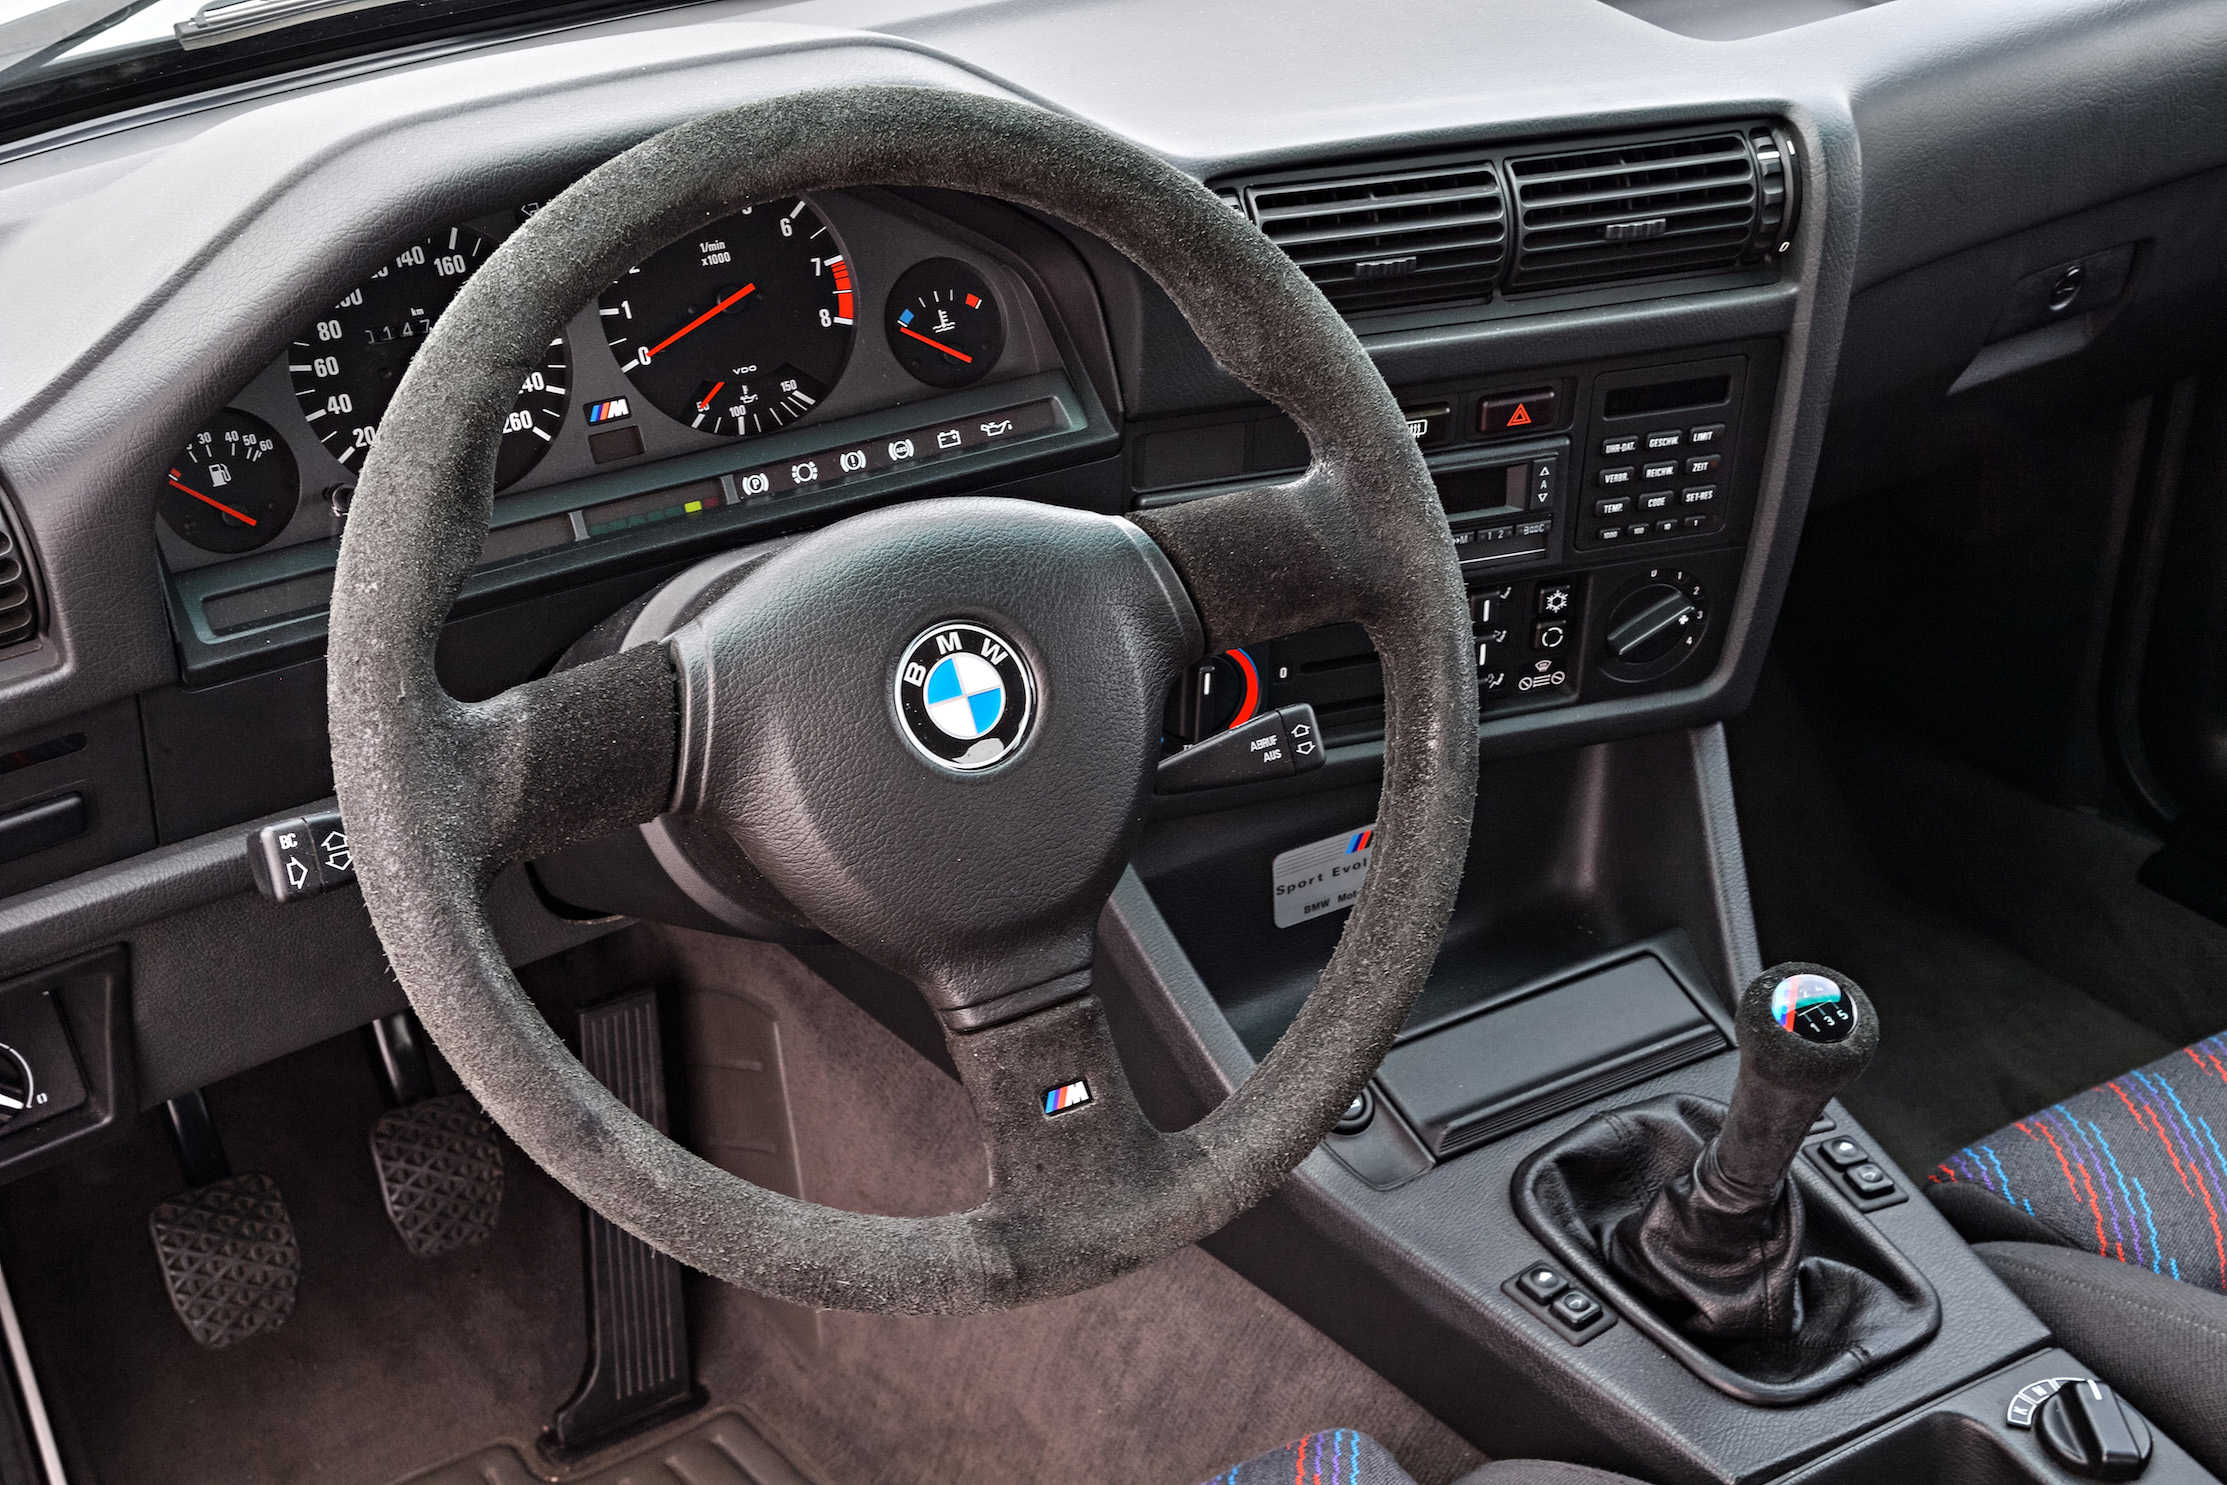 Sloppy BMW E30 steering wheel fix